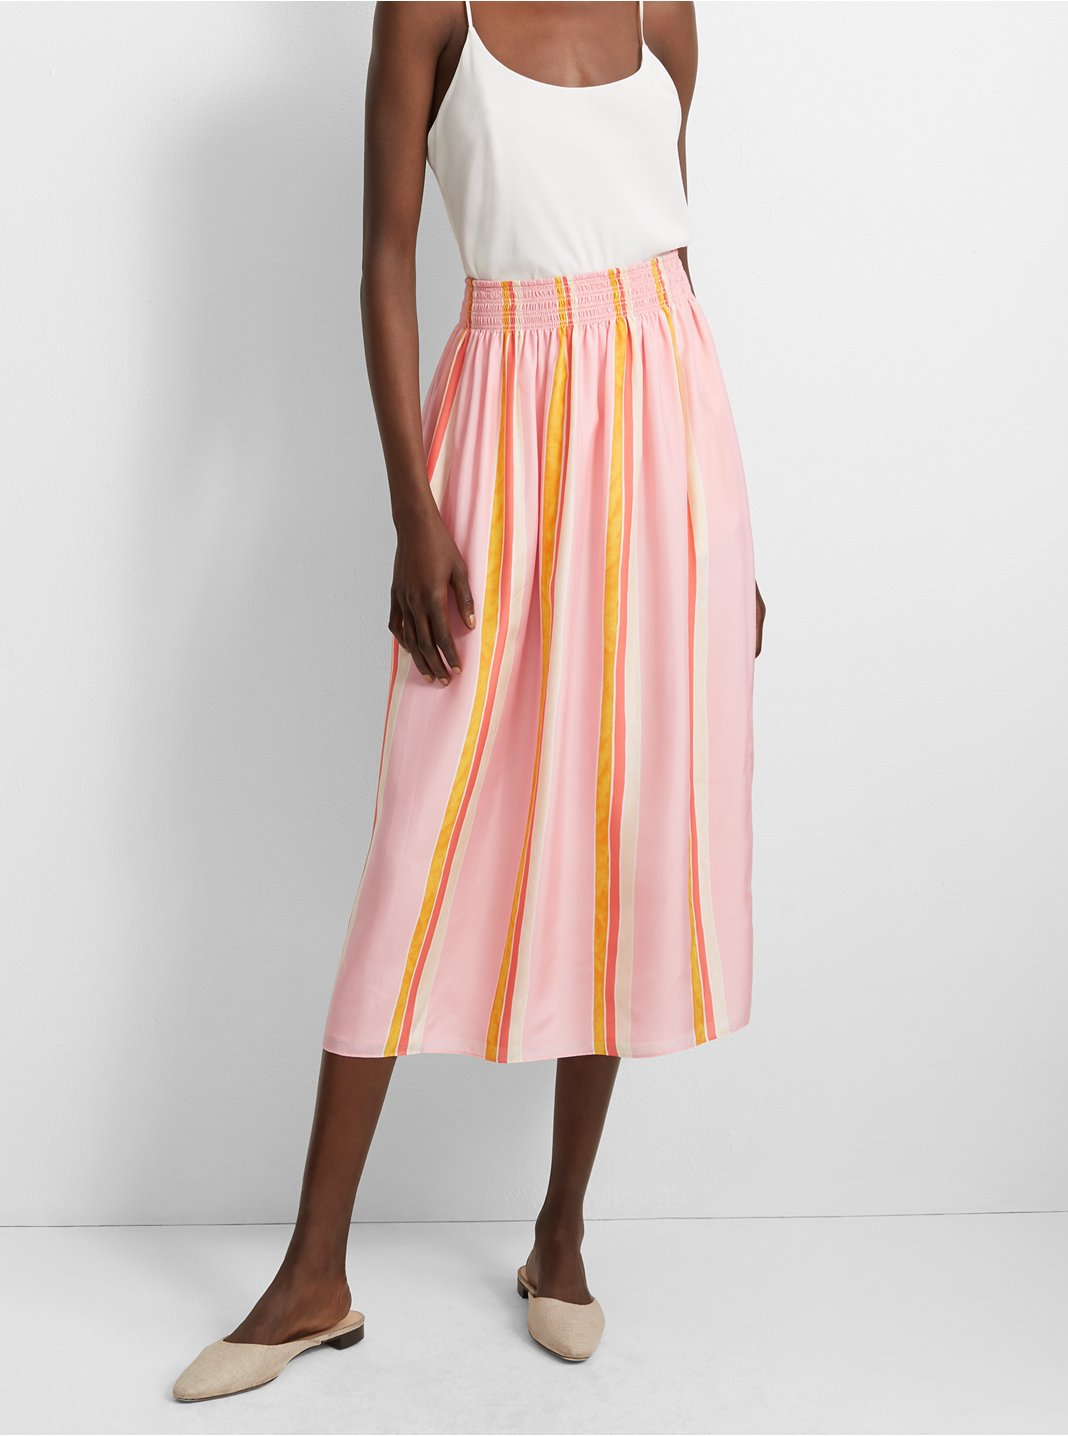 Irodessya Silk Skirt